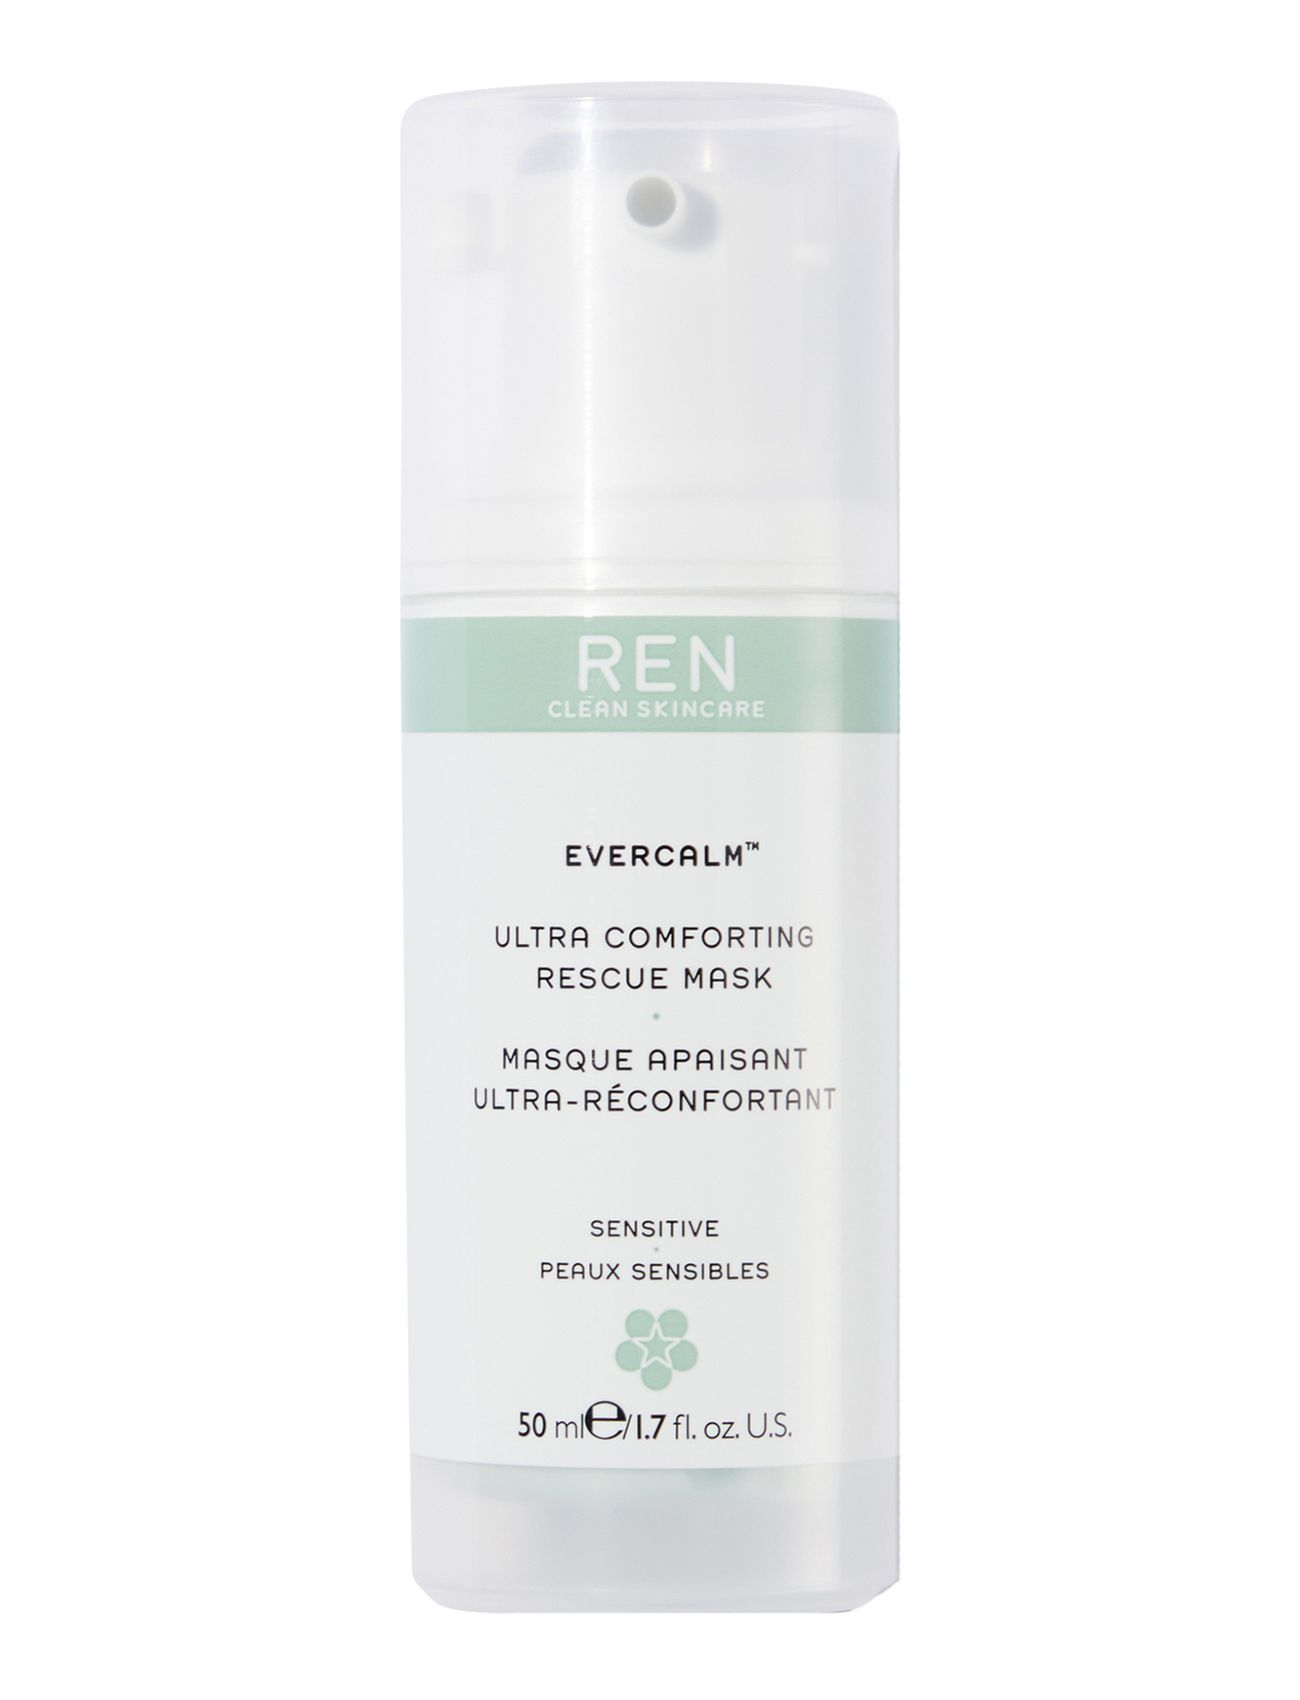 Image of Ultra Comforting Rescue Mask Beauty WOMEN Skin Care Face Face Masks Nude REN (2604348767)